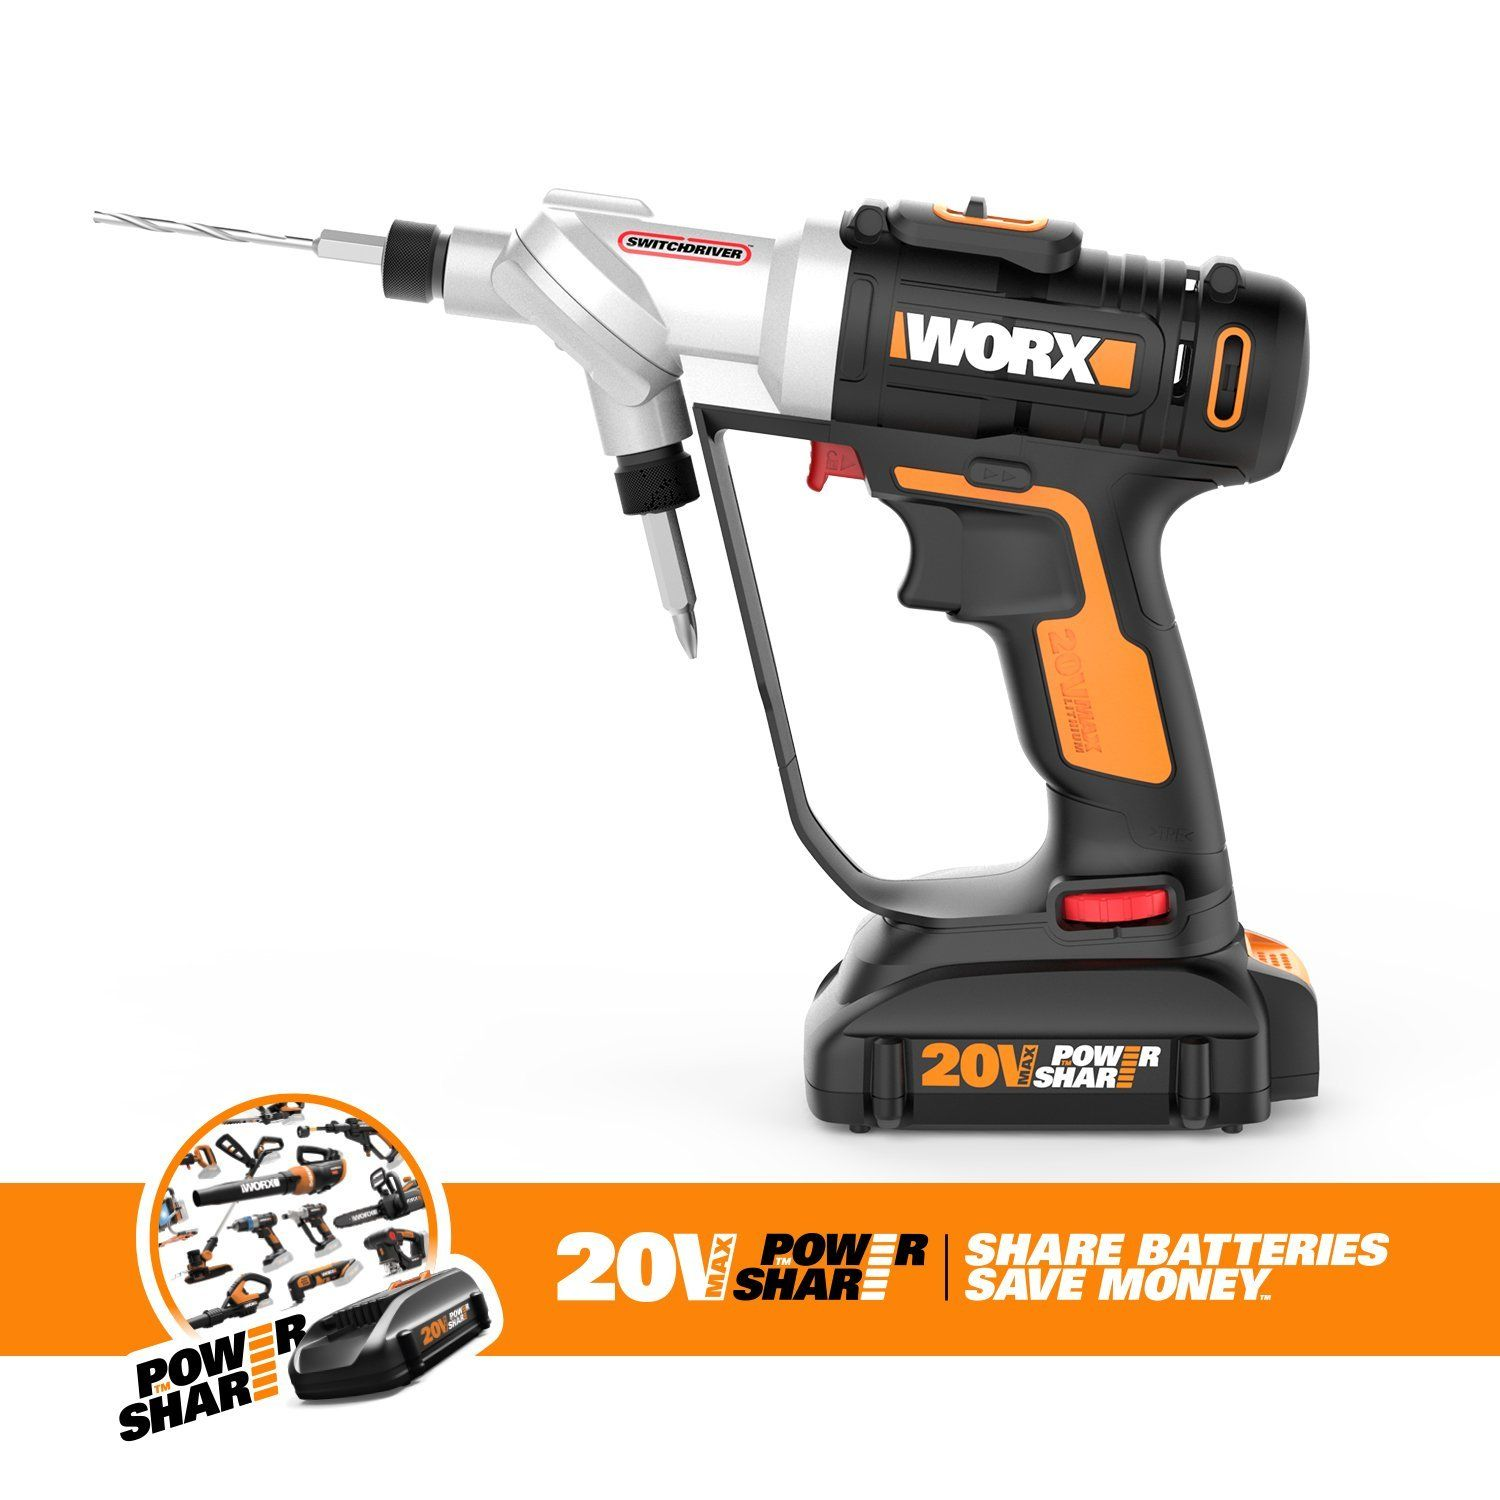 Worx Wx176l 9 20v Switchdriver 2 In 1 Cordless Drill And Driver Tool Only With Rotating Dual Chucks And 2 Speed Motor With Precise Electronic Torque Control To Cordless Drill Drill Driver Tool